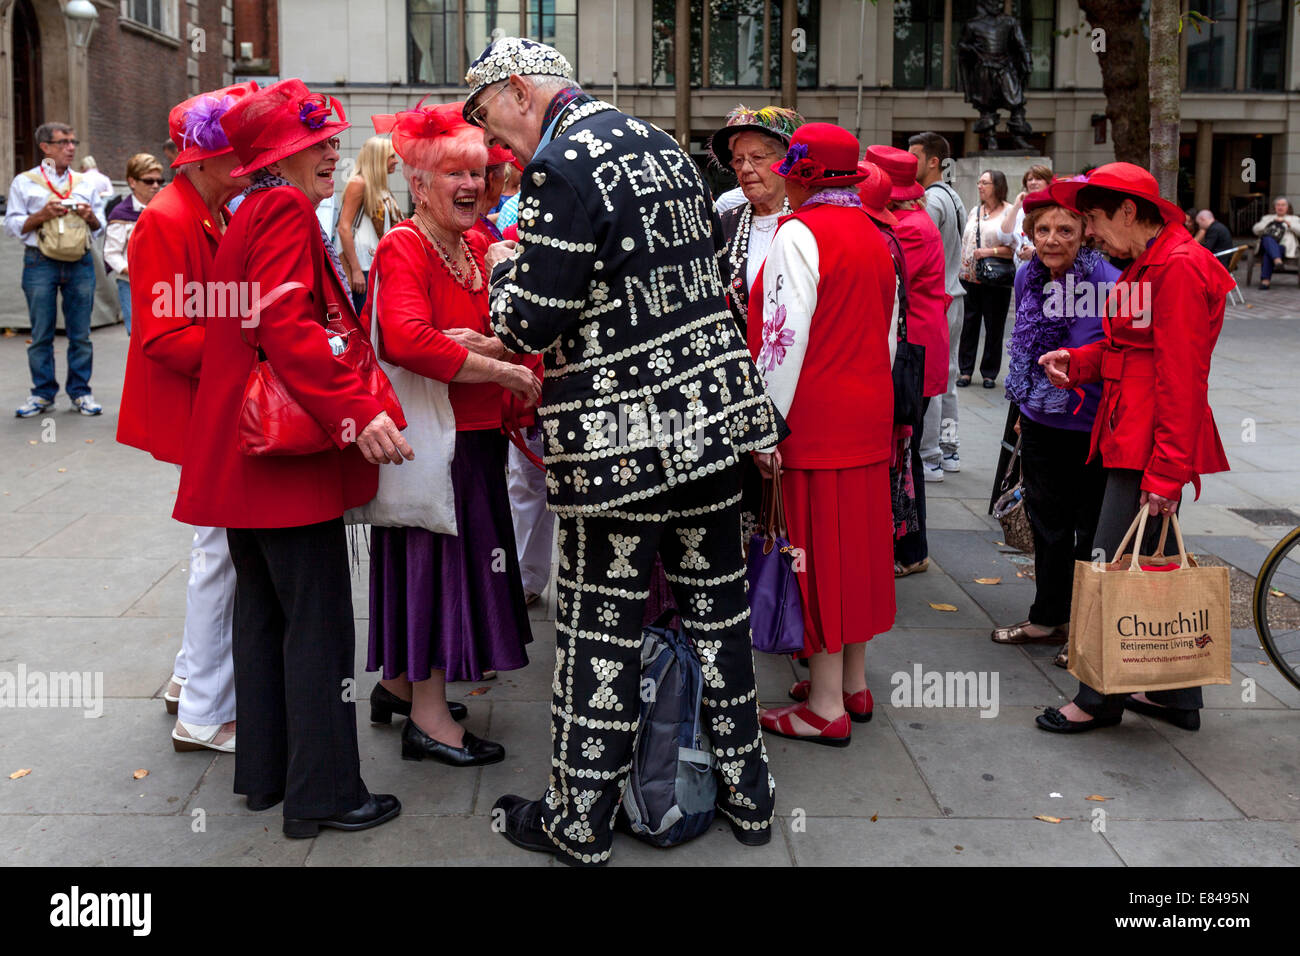 The London Pearly Kings & Queens Harvest Festival, St Mary Le Bow Church, London, England - Stock Image